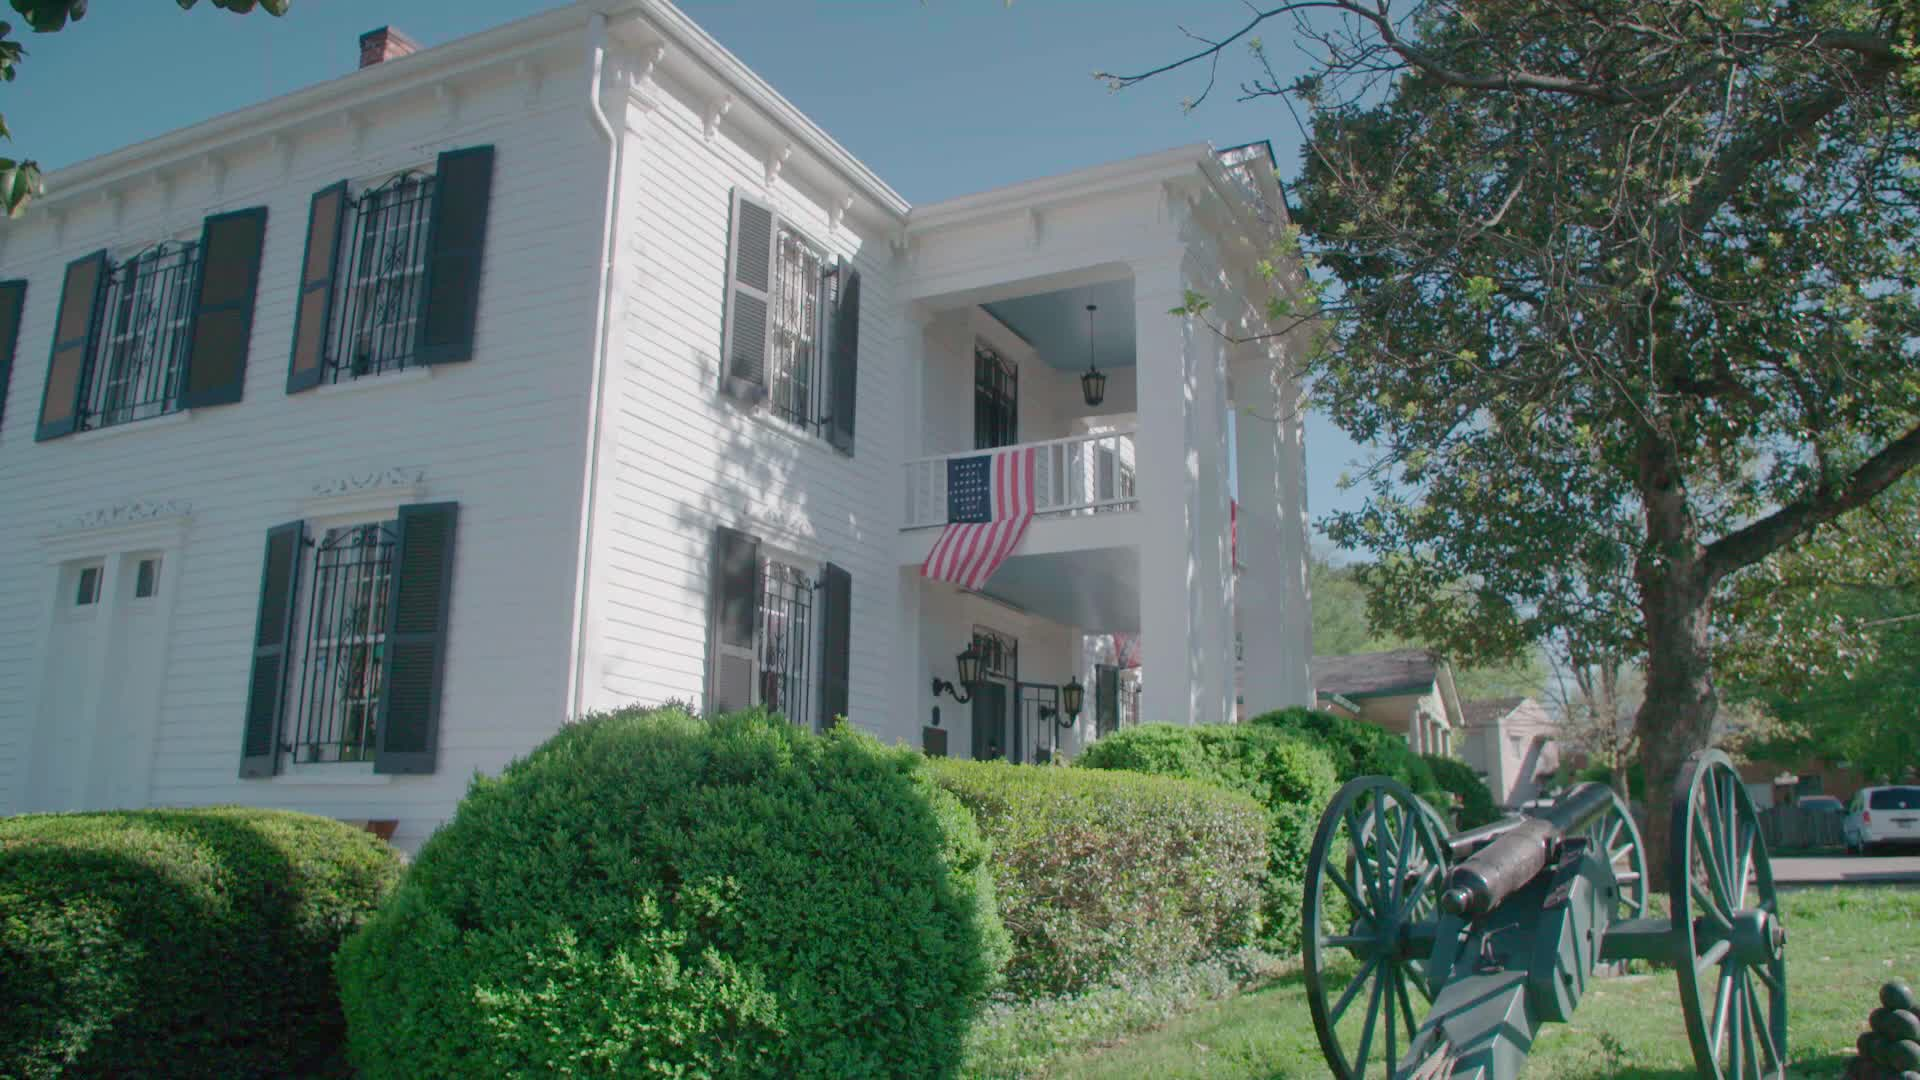 Step inside this haunted museum, built on the bloodiest battlefield of the Civil War